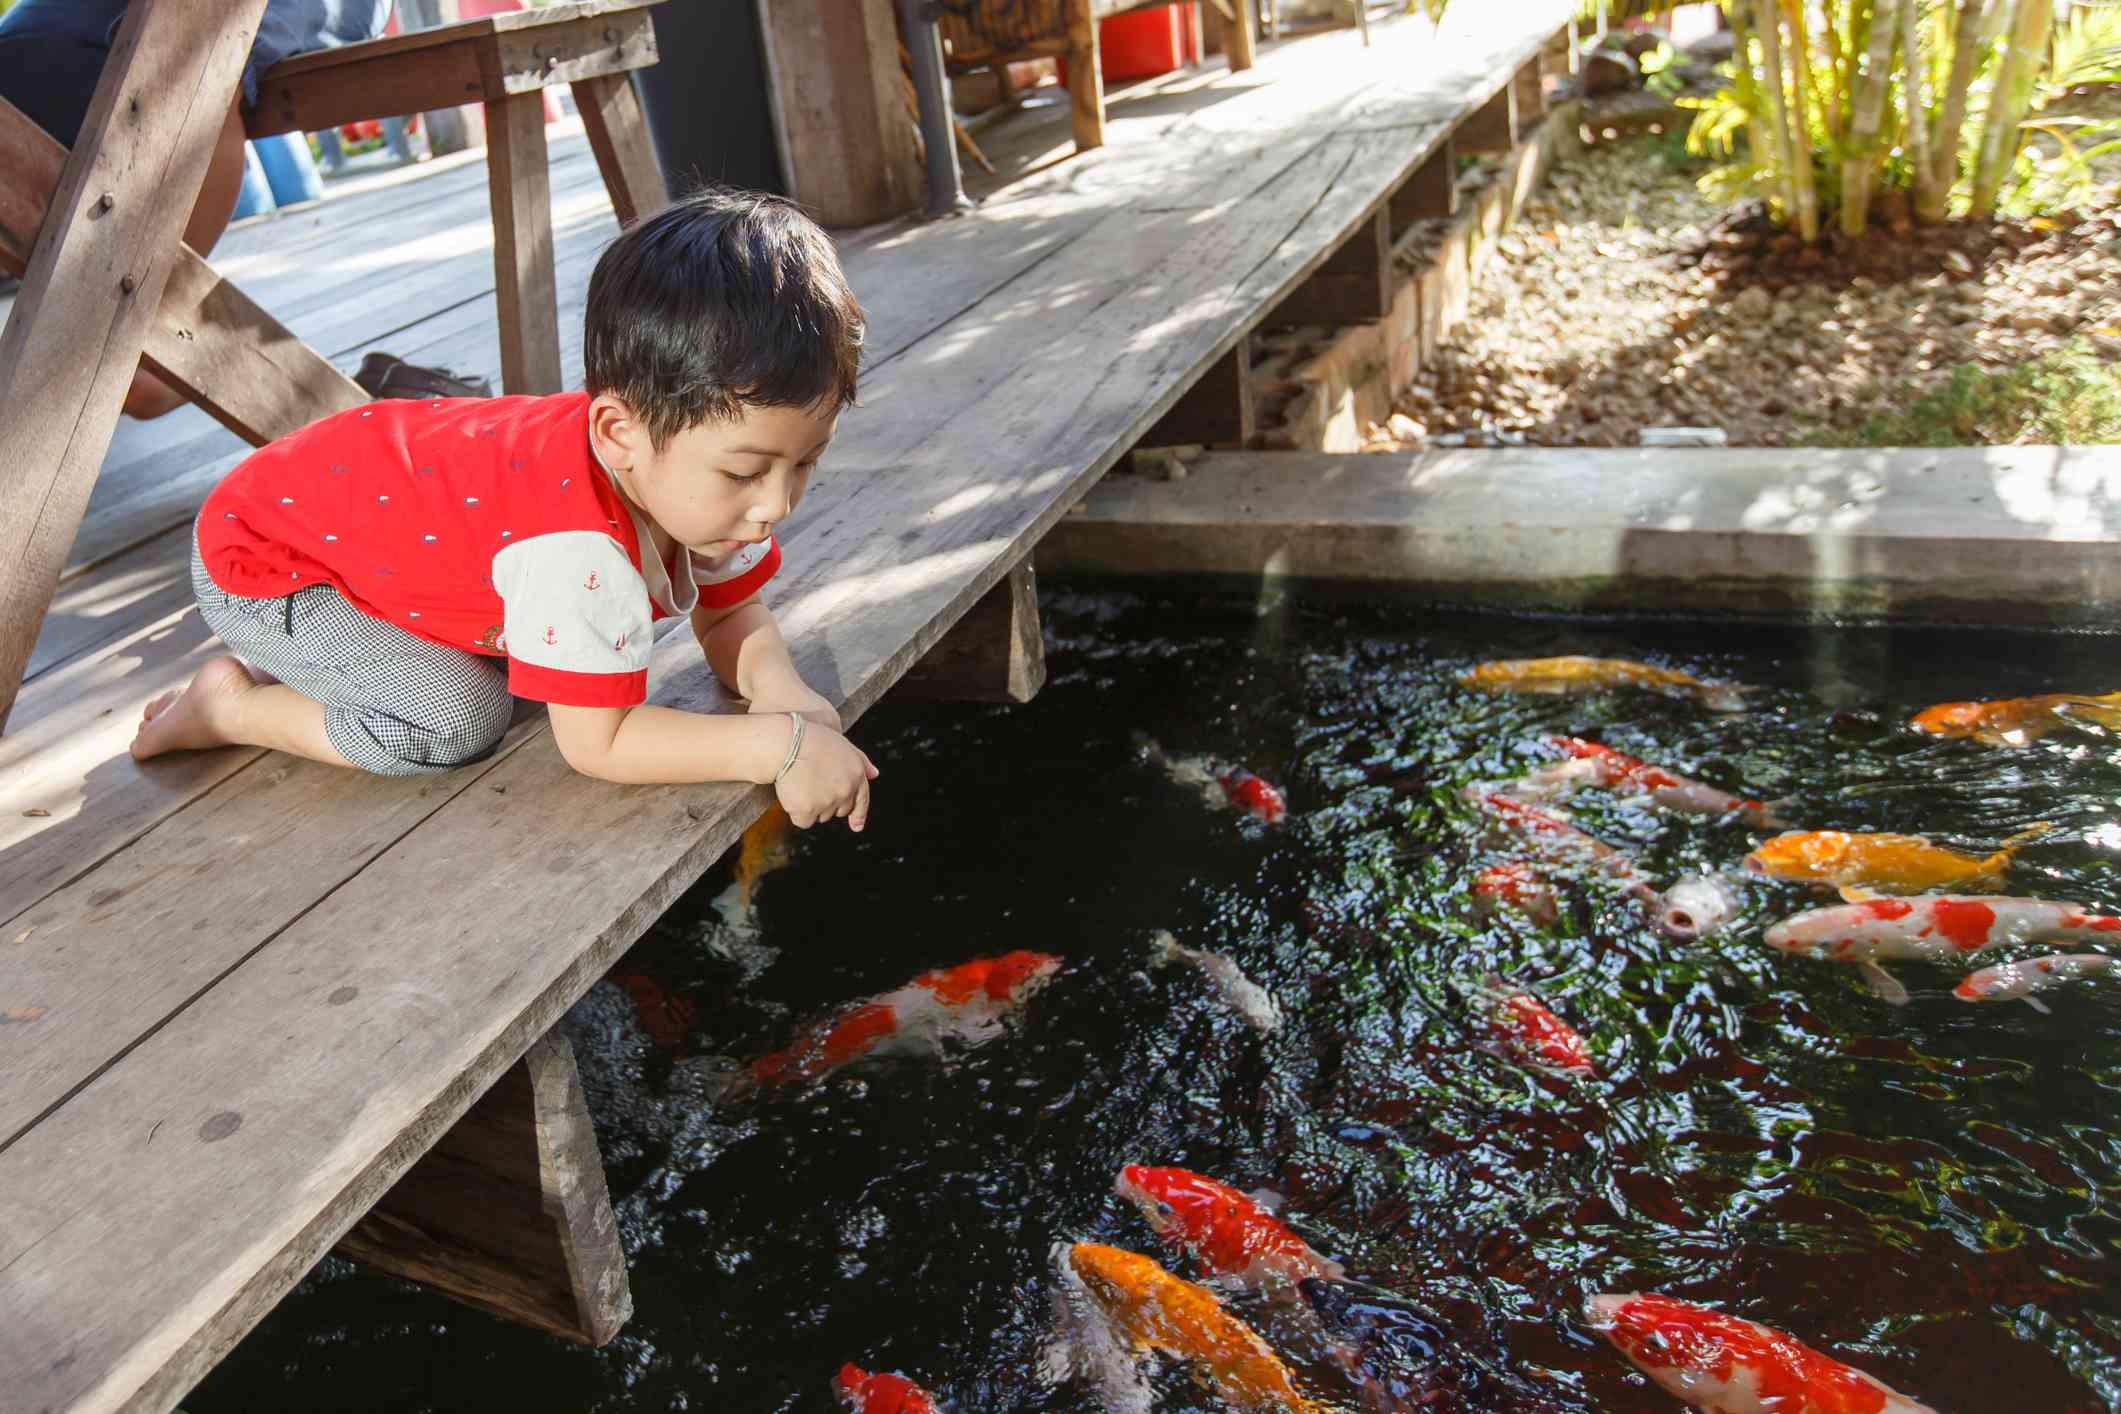 A child kneeling down on a wood platform to view koi fish.